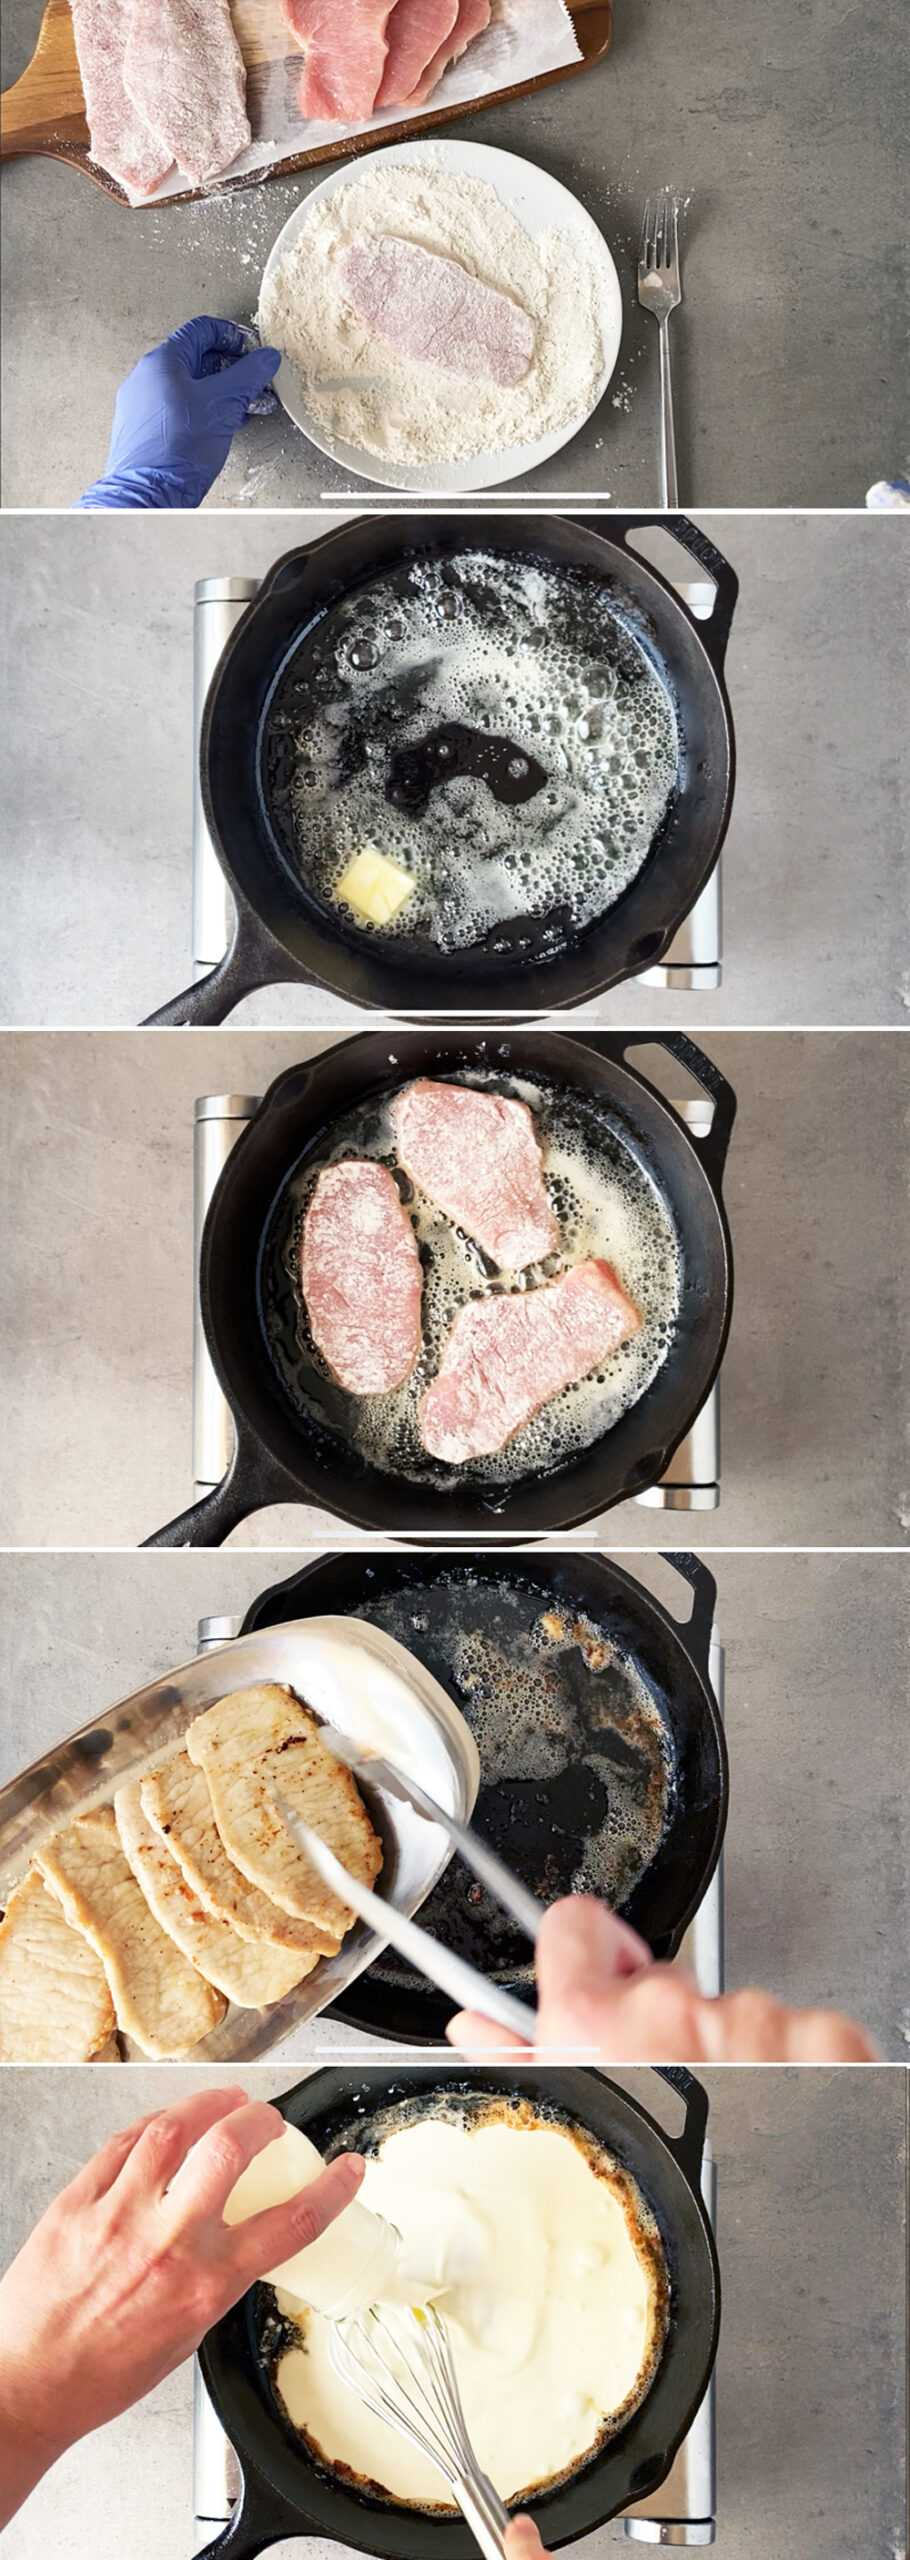 How to cook thin pork chops on the stove - pan sear method